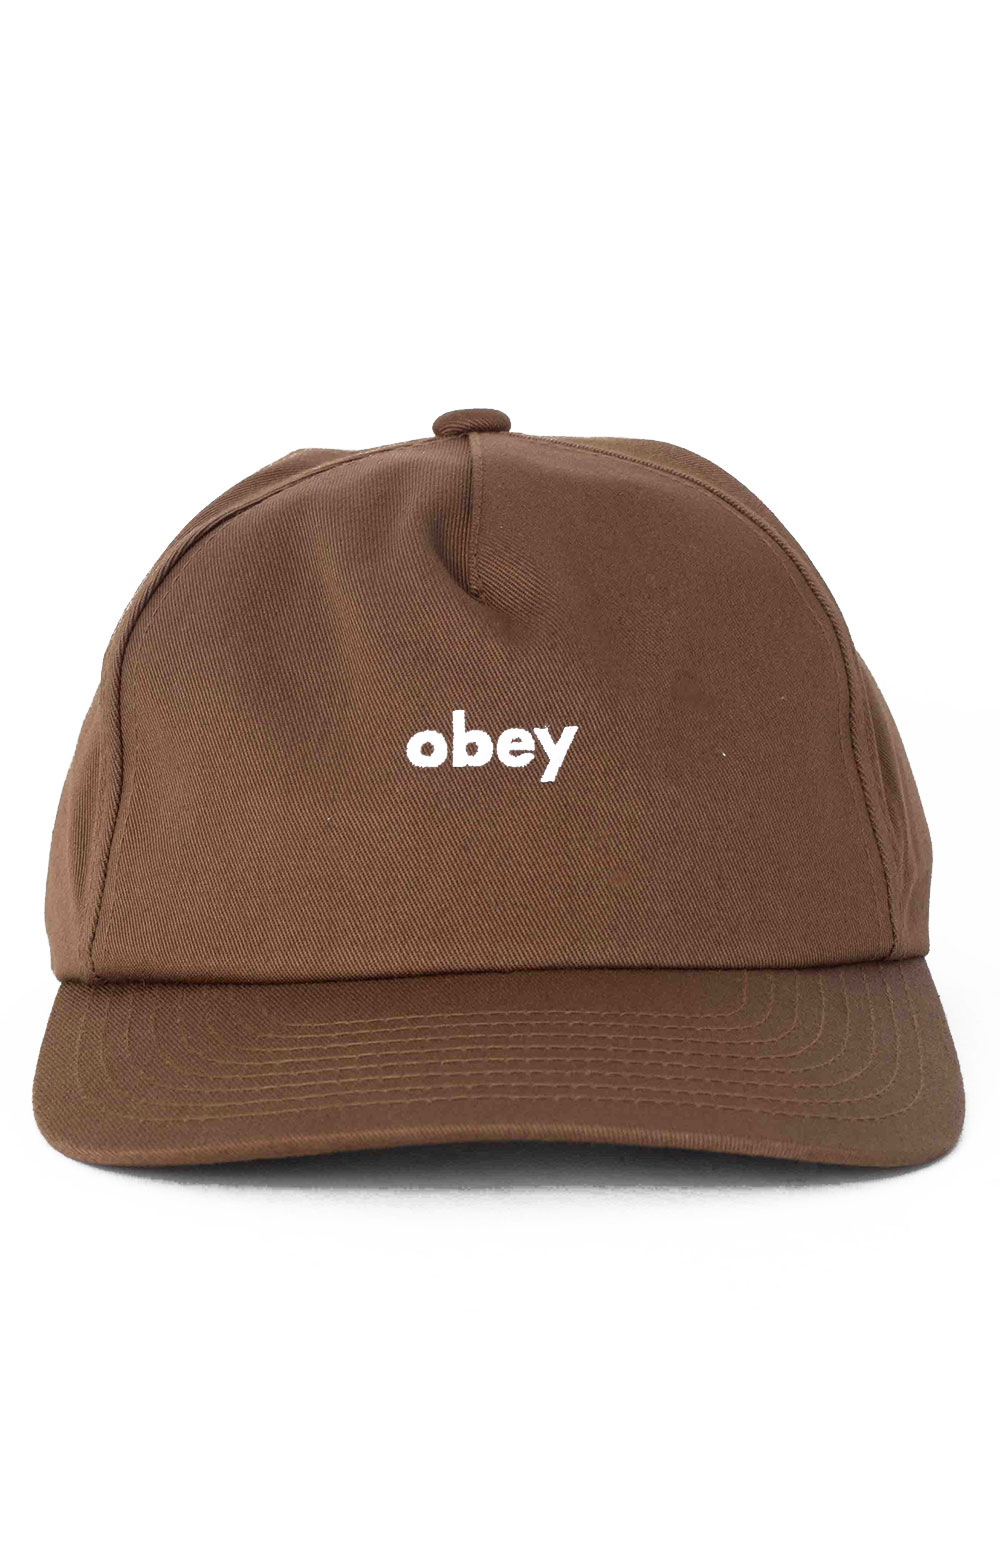 Lowercase Snap-Back Hat - Brown 2